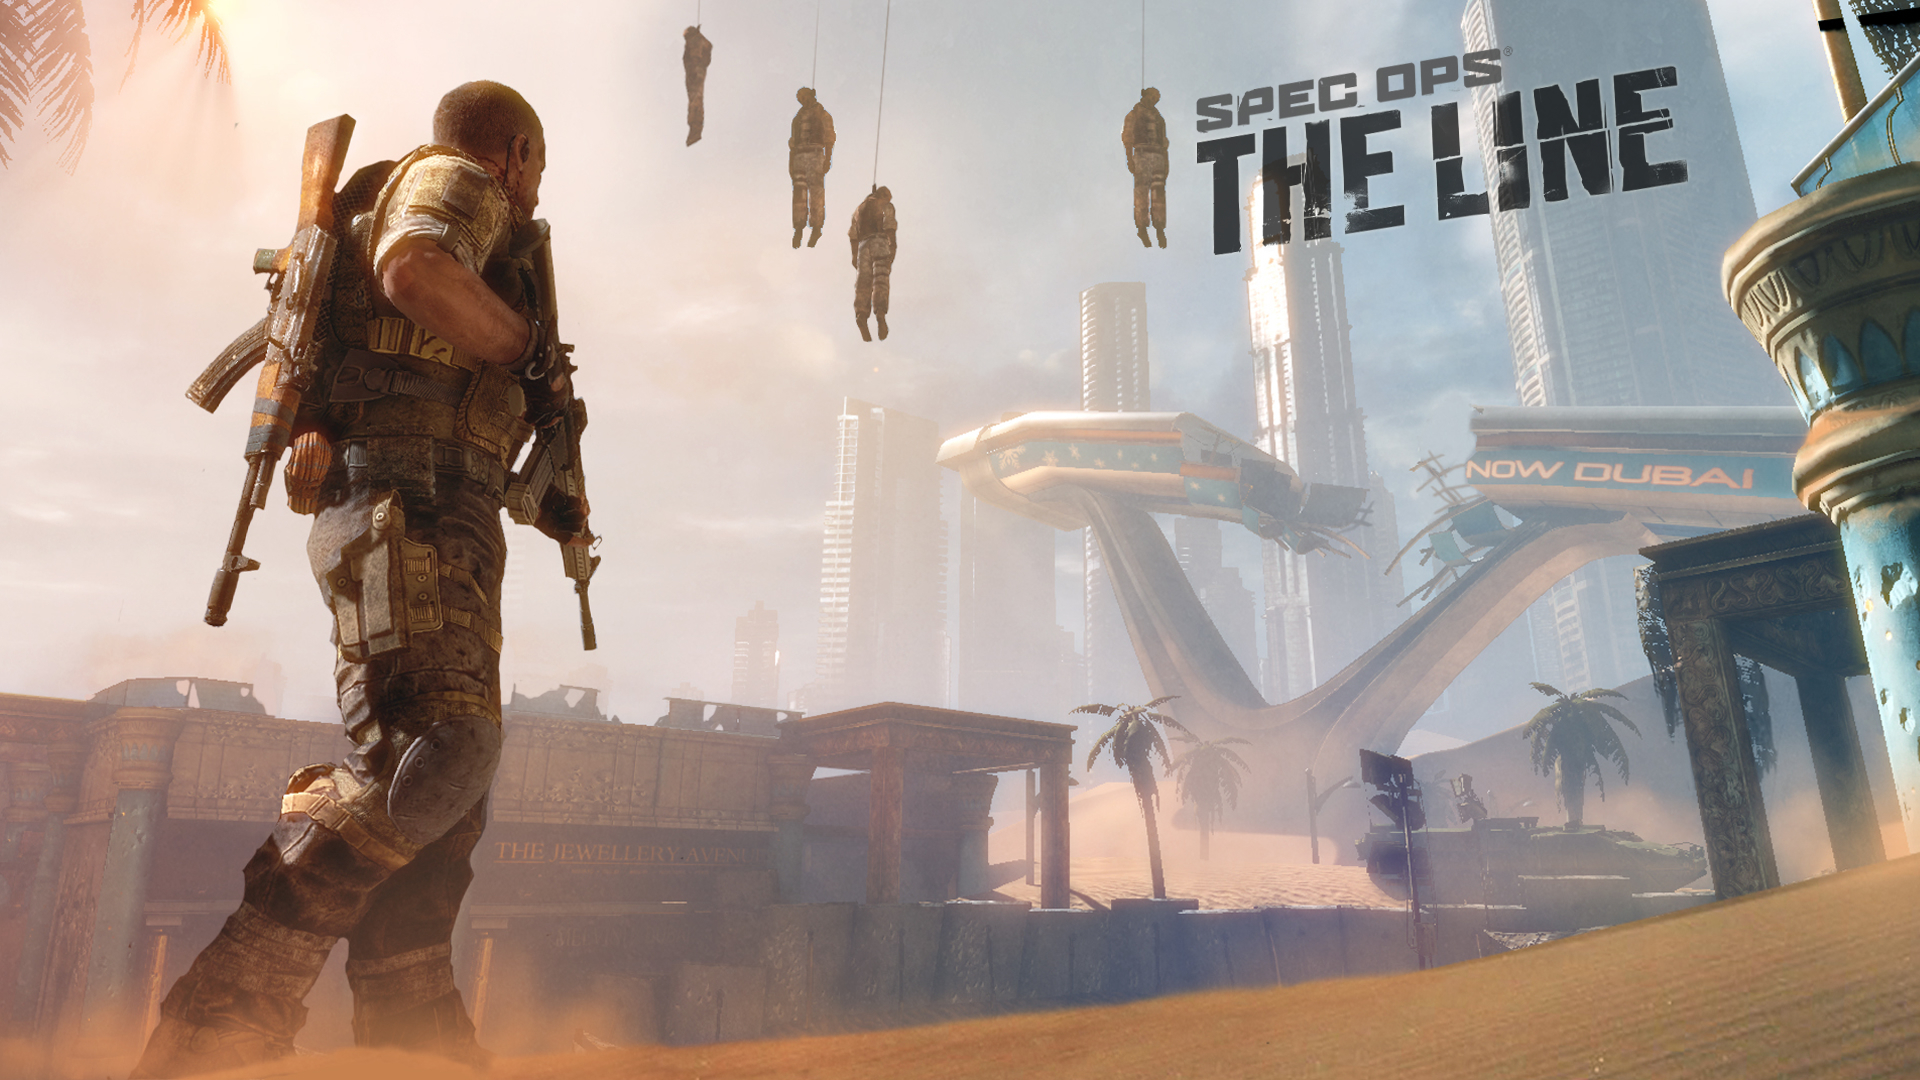 Spec Ops The Line HD Wallpaper Background Image 1920x1080 1920x1080